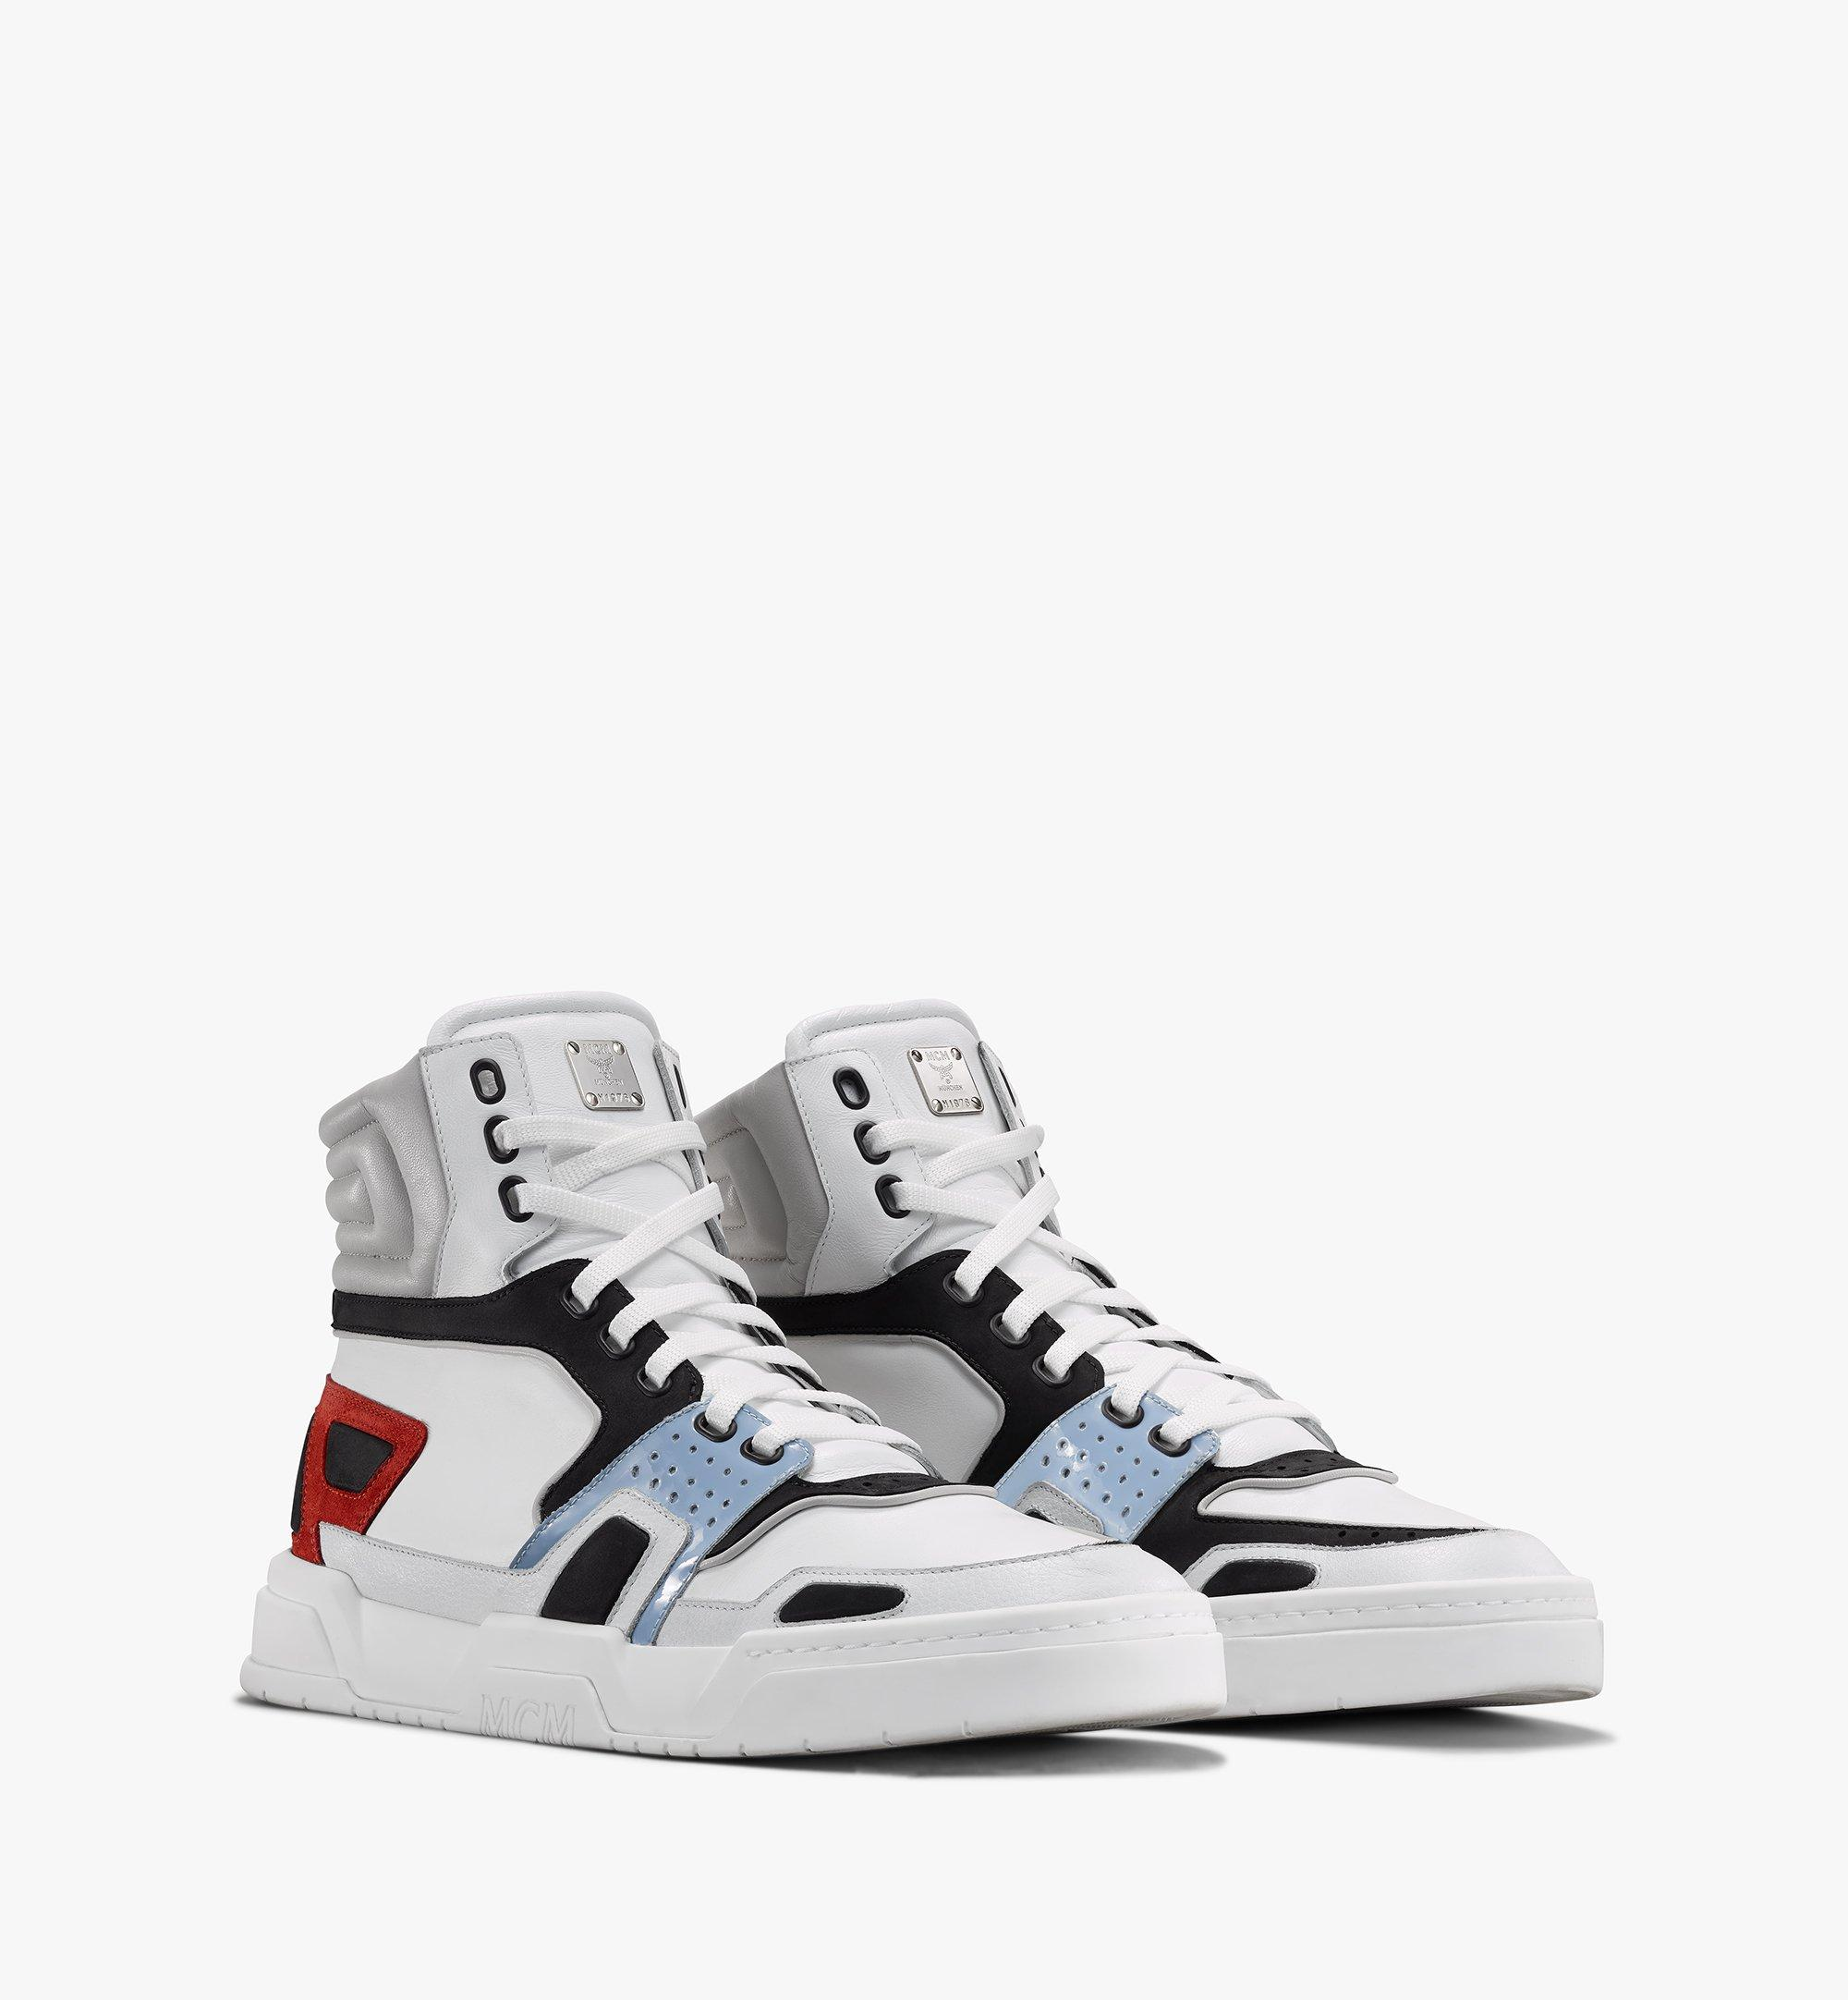 36 Women's Skyward High Top Sneakers White | MCM® FR